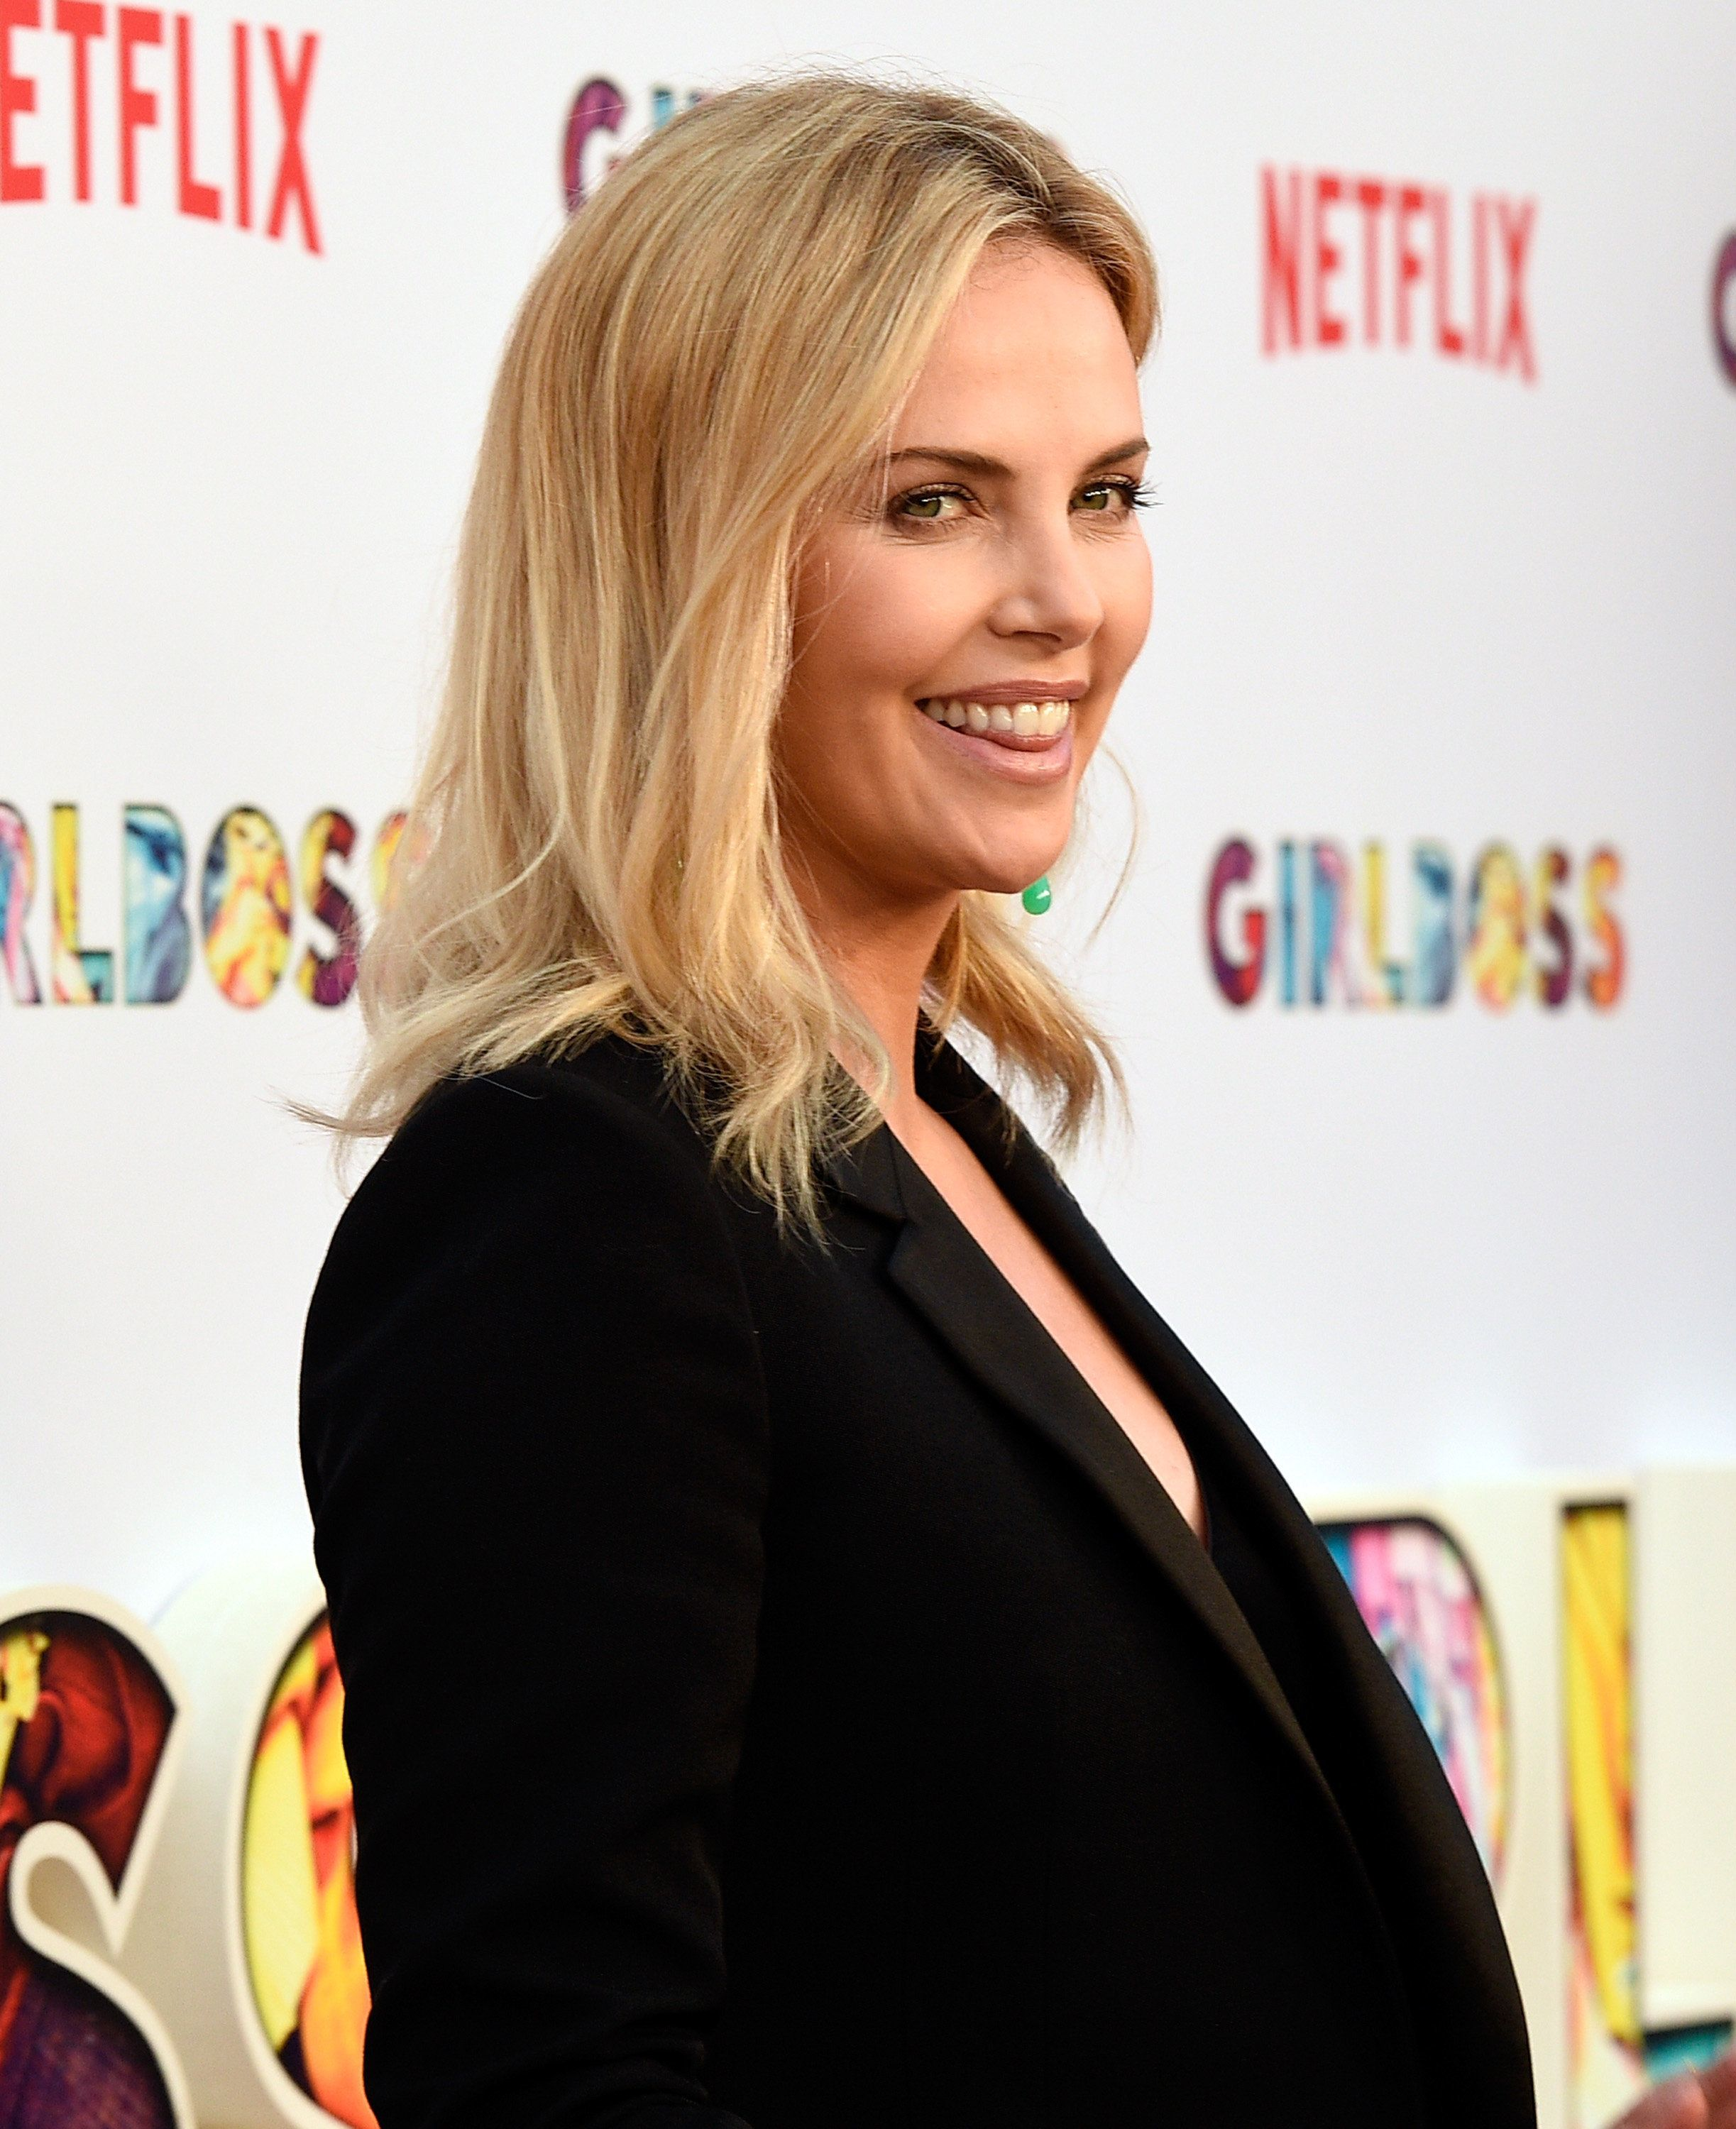 HOLLYWOOD, CA - APRIL 17:  Executive producer Charlize Theron attends the premiere of Netflix's 'Girlboss' at ArcLight Cinemas on April 17, 2017 in Hollywood, California.  (Photo by Kevork Djansezian/Getty Images)